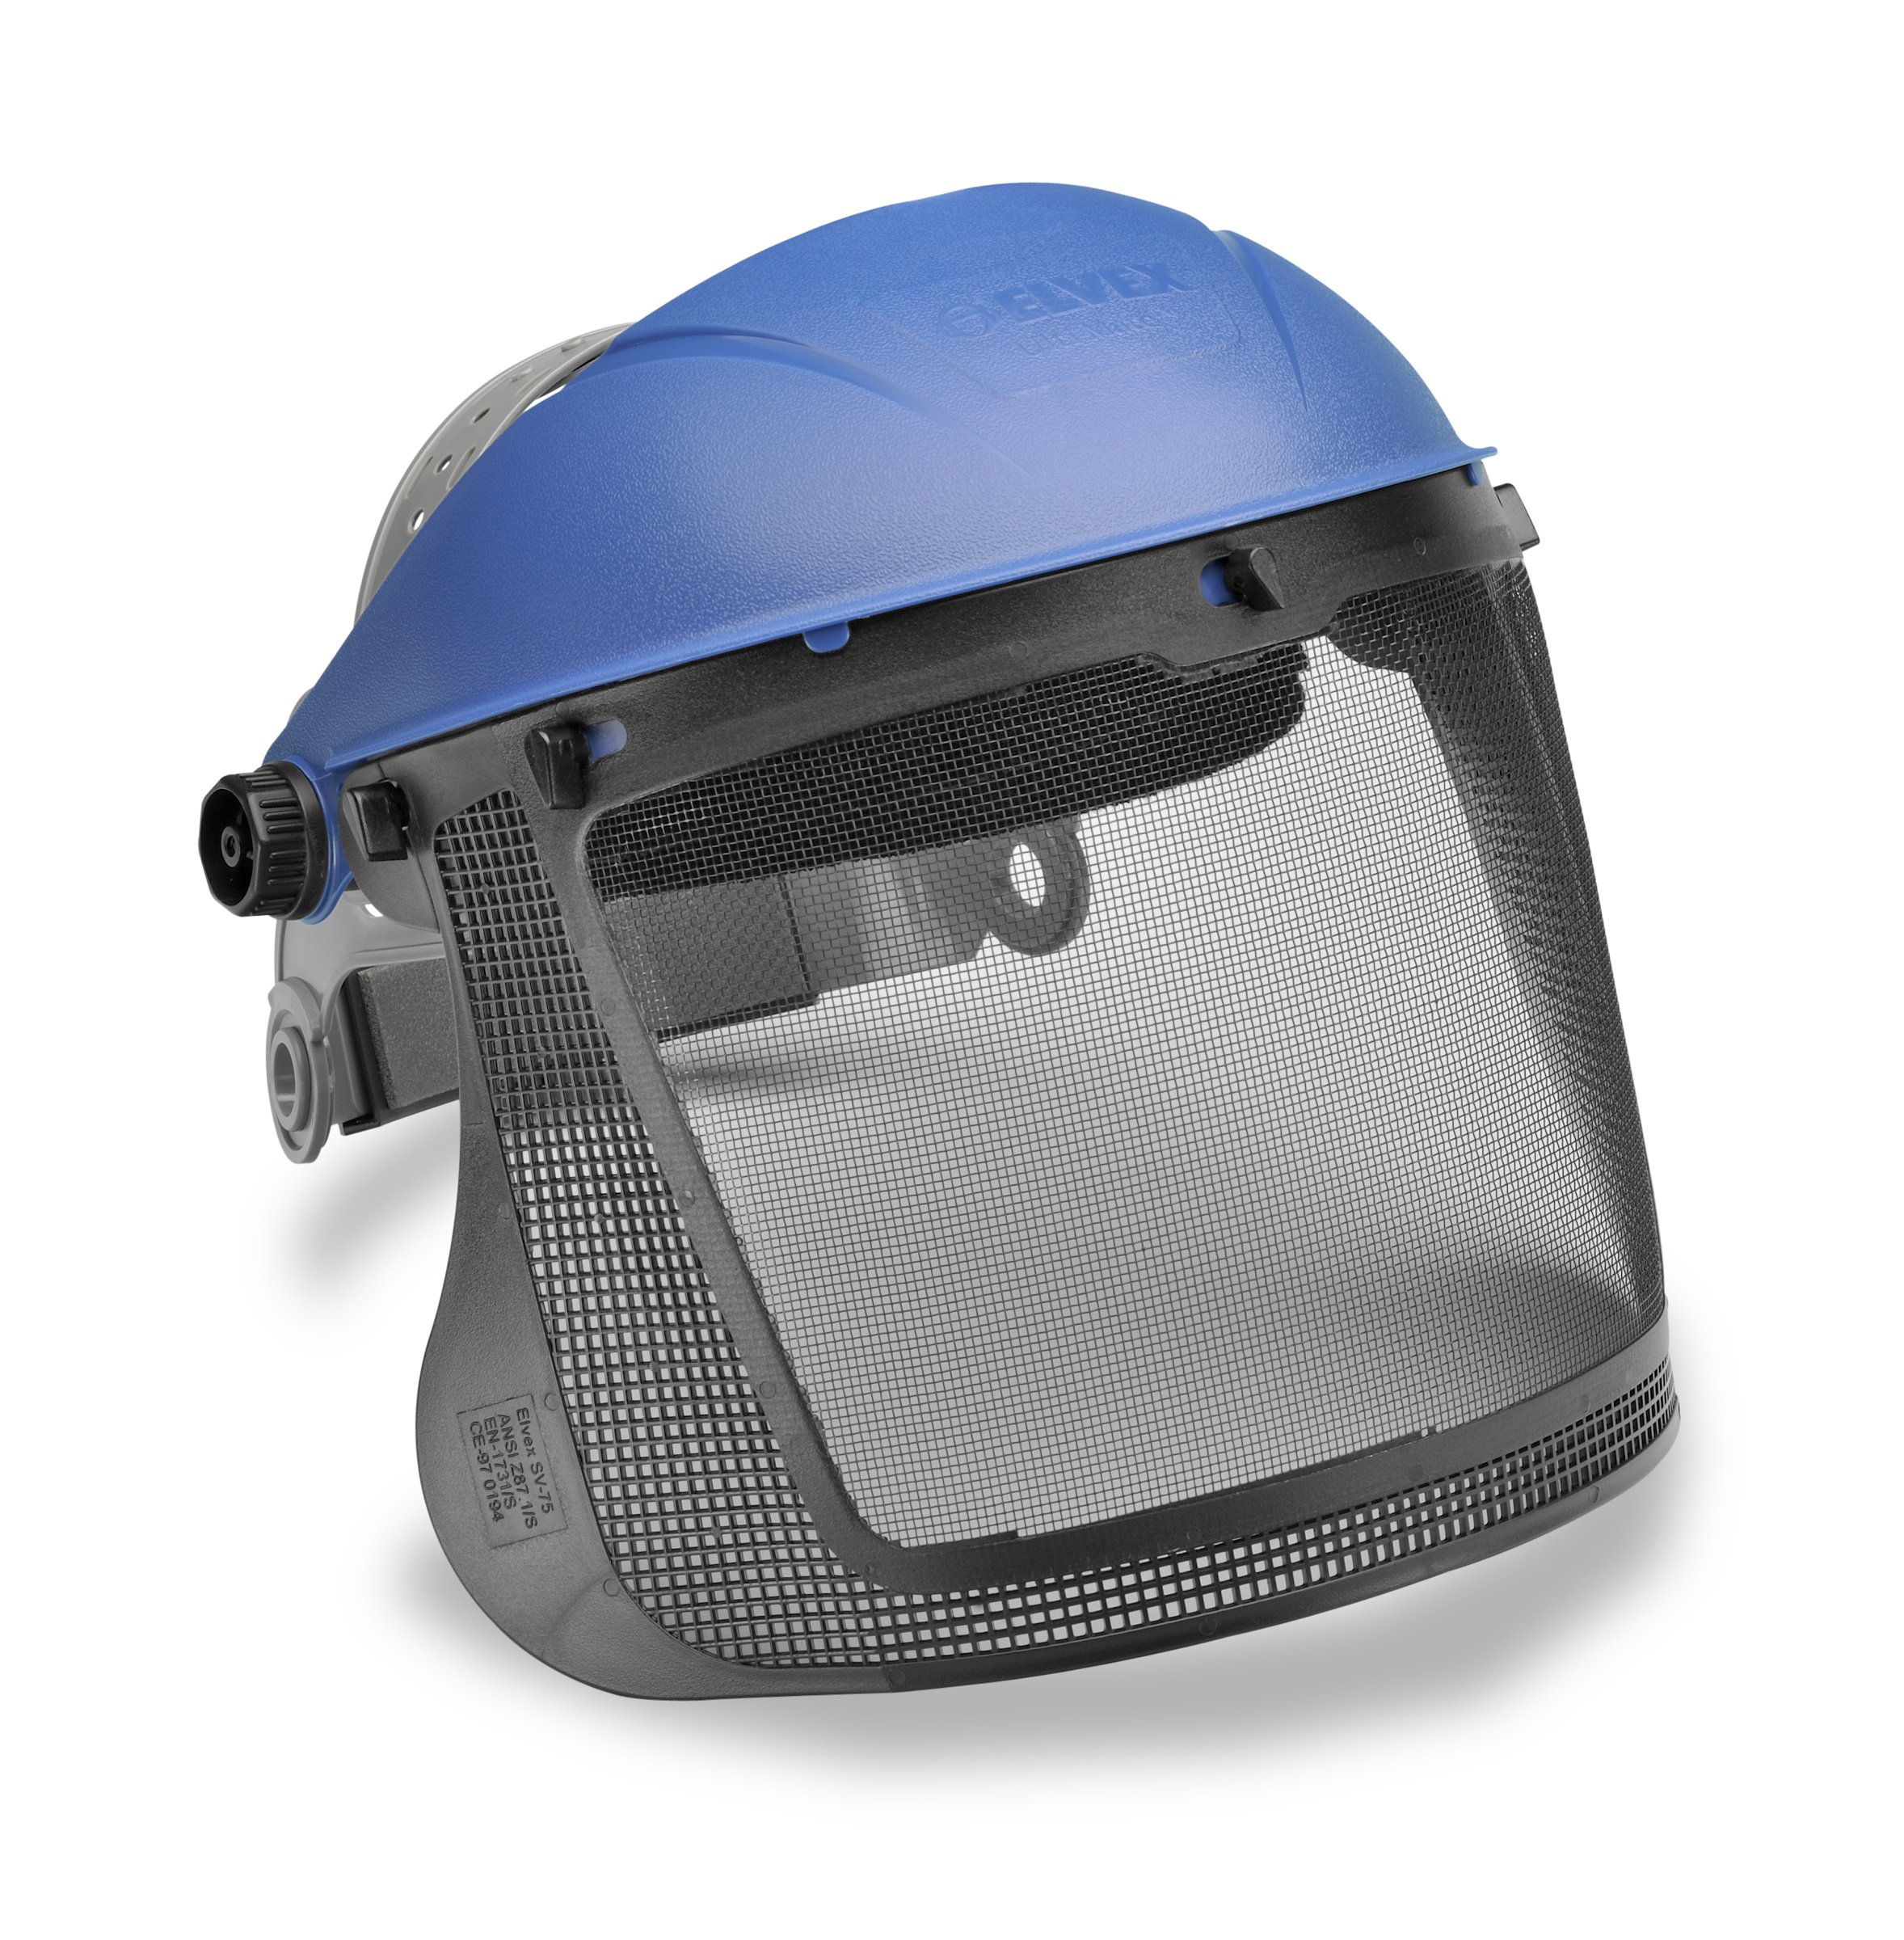 Elvex - ULTIMATE HEADGEAR SYSTEM HG-70 WITH STEEL MESH SCREEN, PIN-LOCK SUSPENSION AND FABRIC SWEATBAND